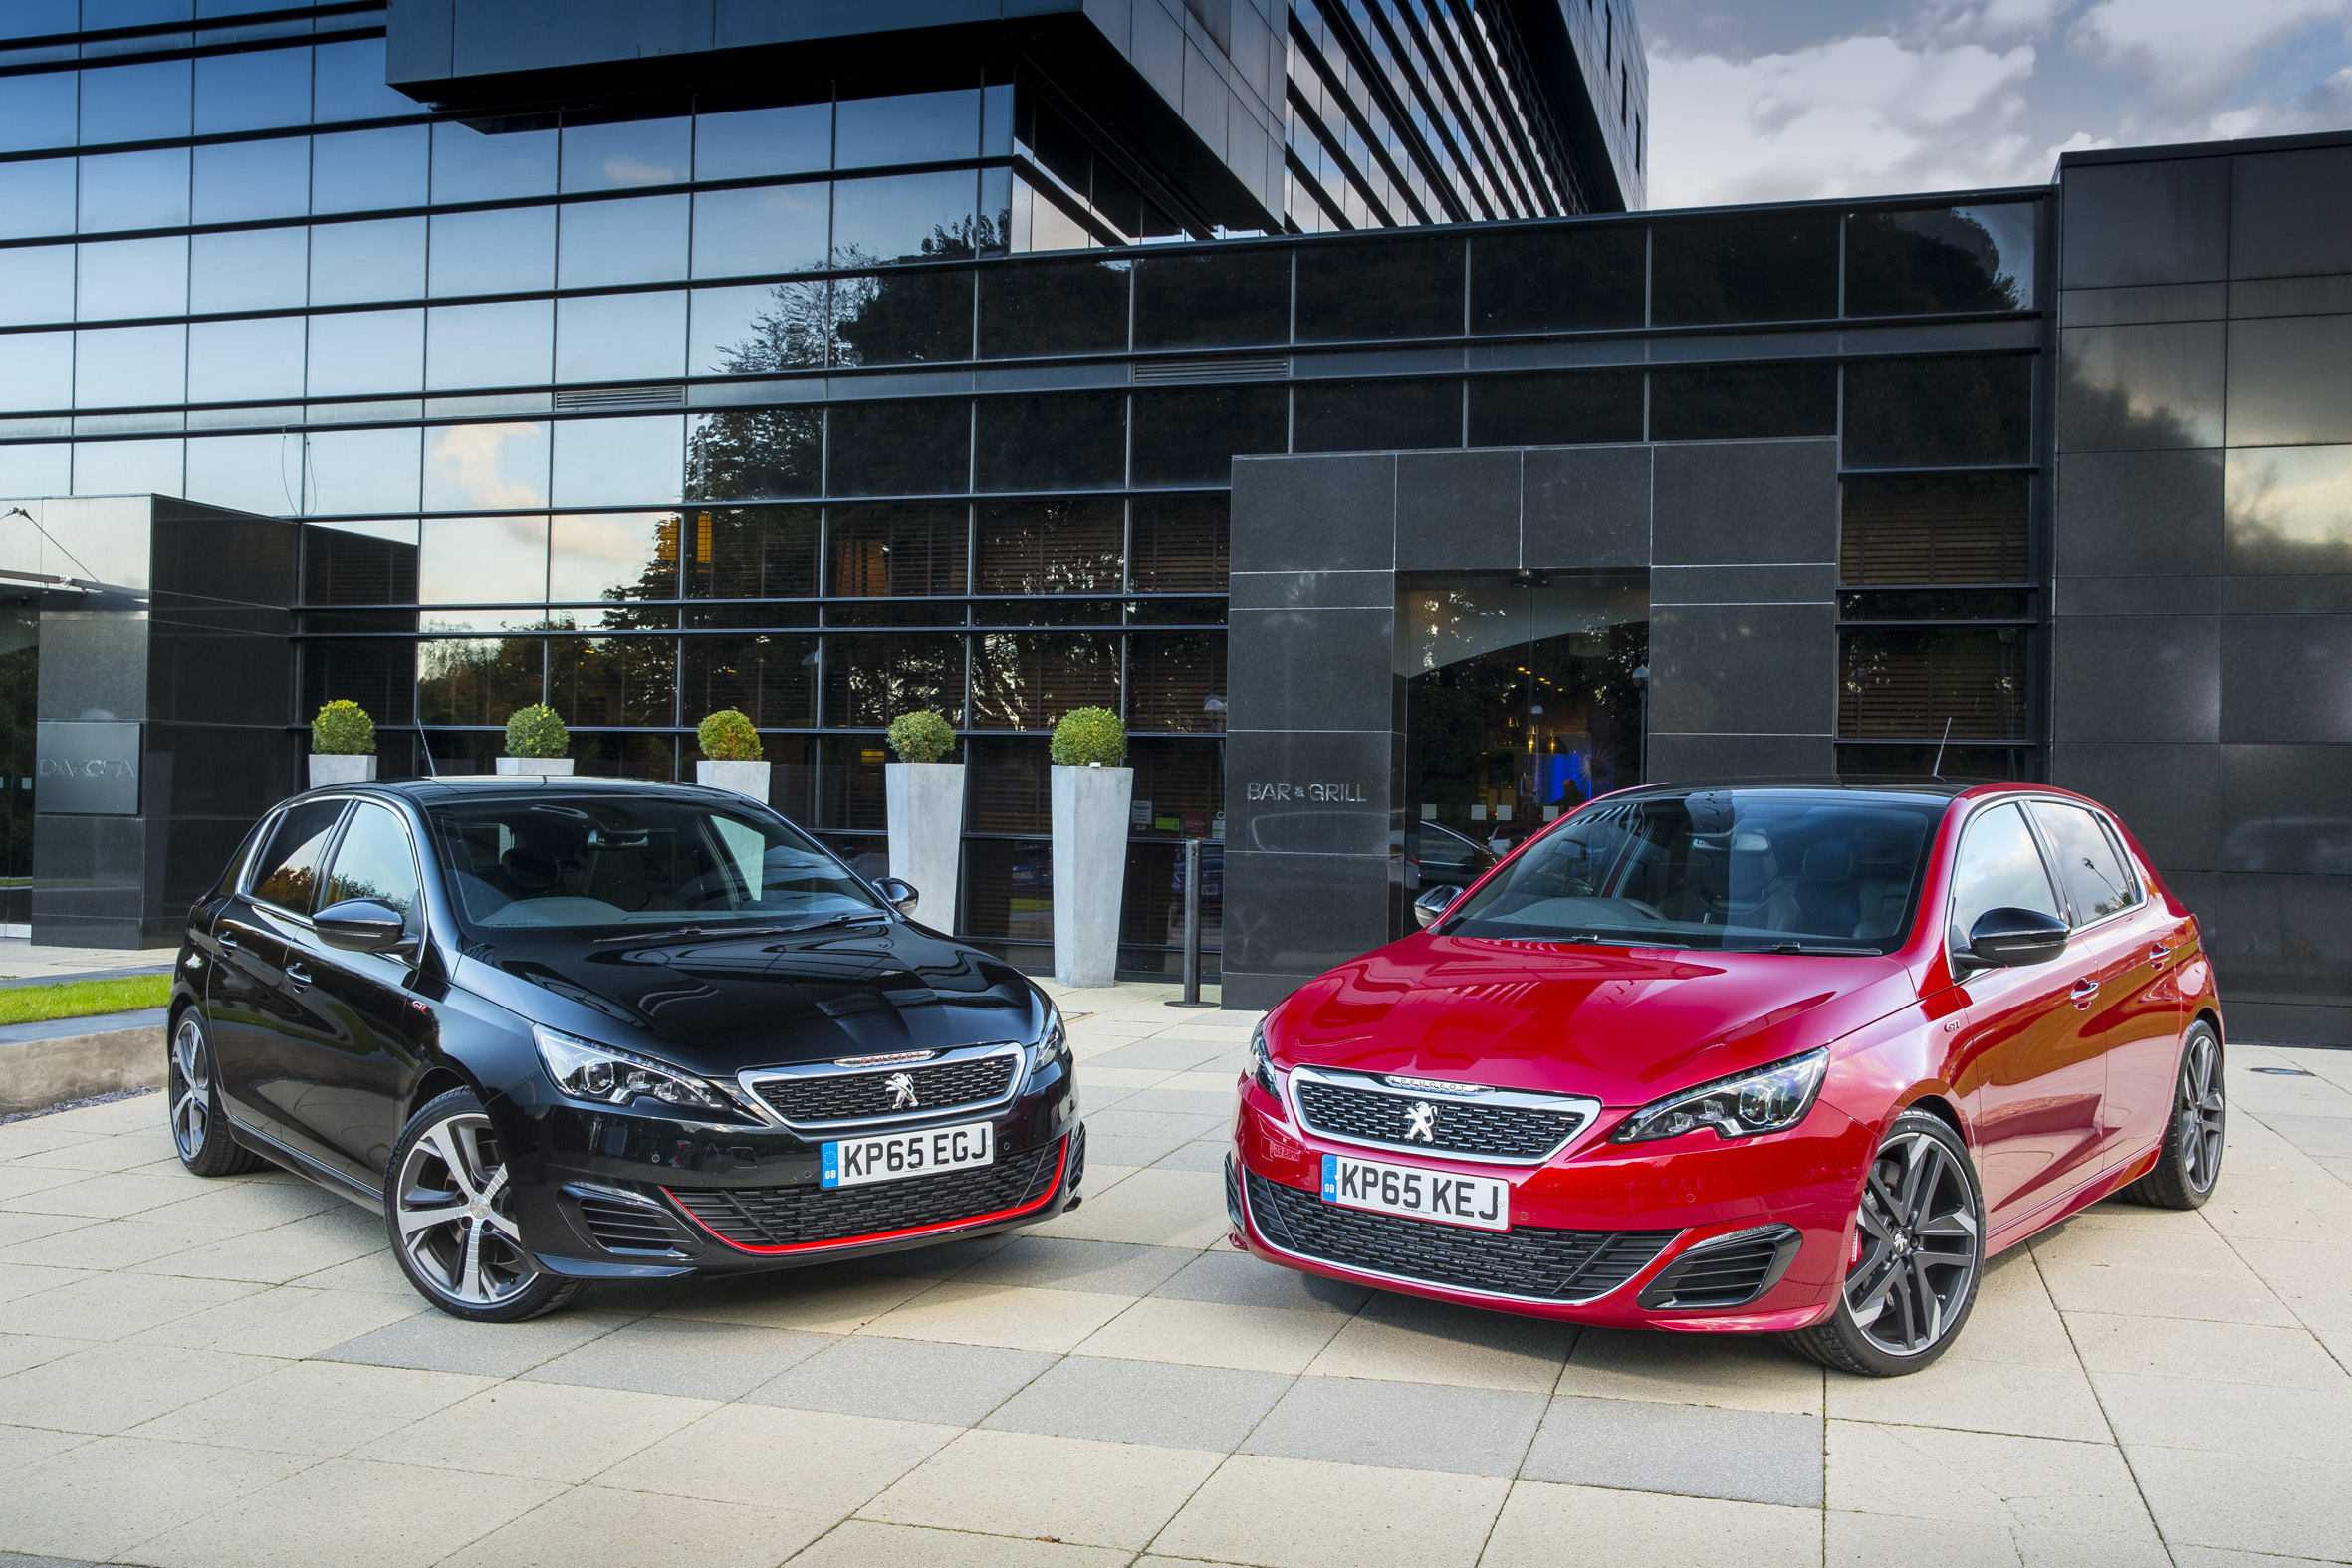 2016 Peugeot 308 GTi 270 (left) and 250